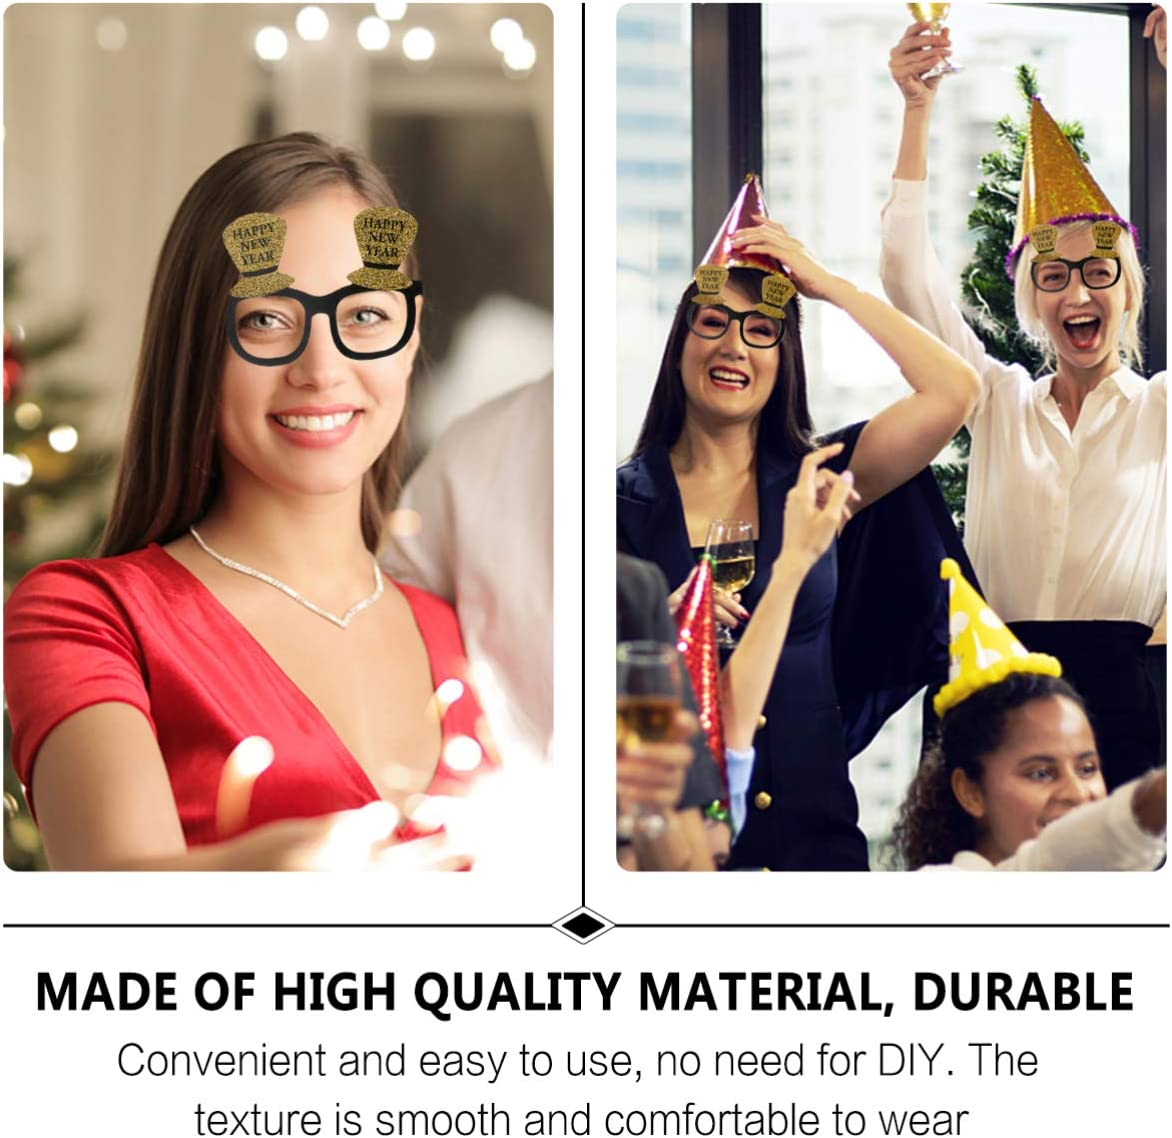 Amosfun 9Pcs 2021 Eyeglasses Happy New Year Glasses Frames Funny Cheering Spectacles Novelty Sunglasses for Christmas New Year Eve Costume Photo Props